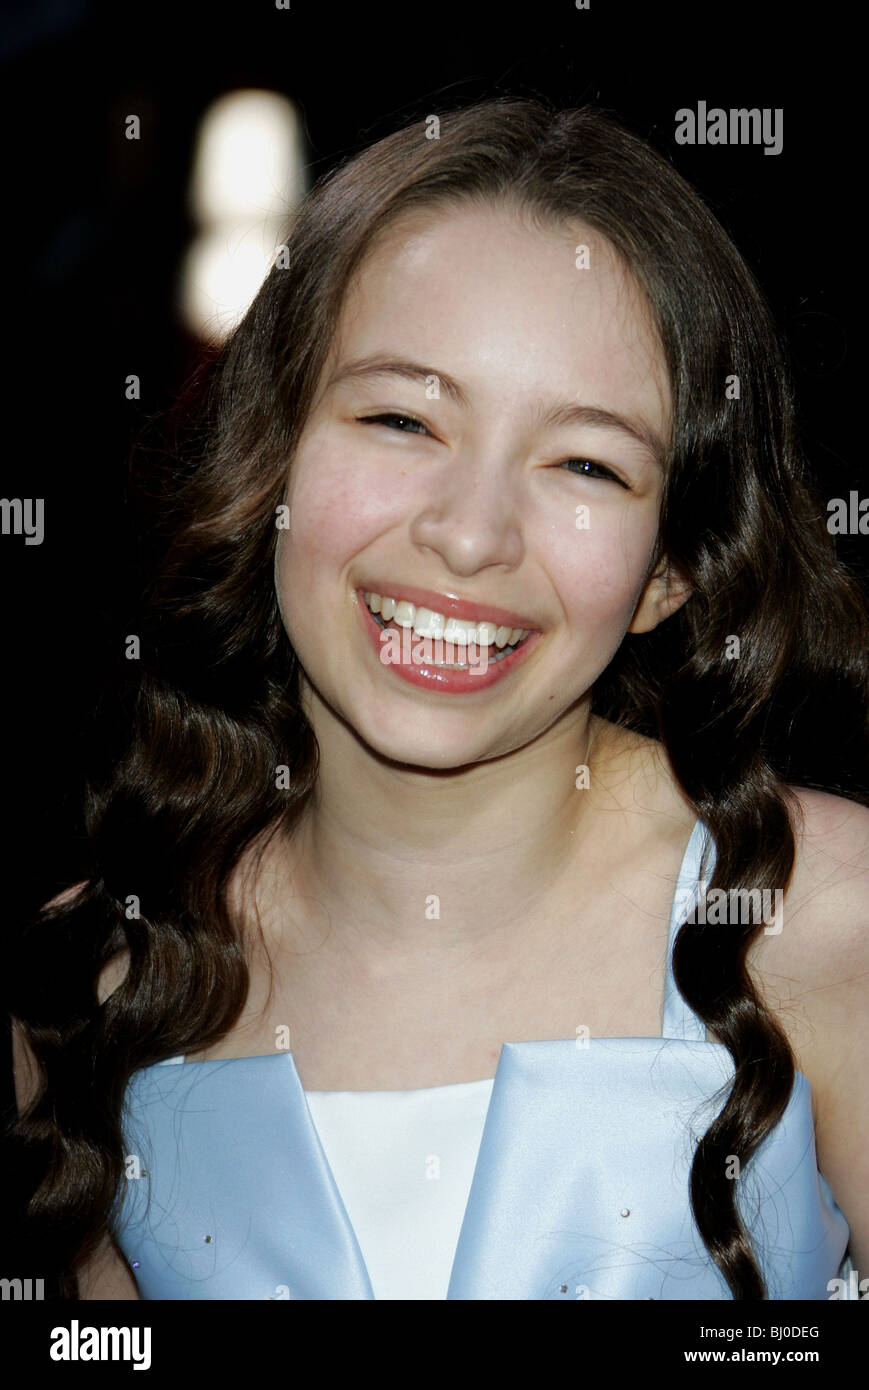 JODELLE FERLAND ACTRESS HOLLYWOOD  LOS ANGELES  USA 20/04/2006 - Stock Image